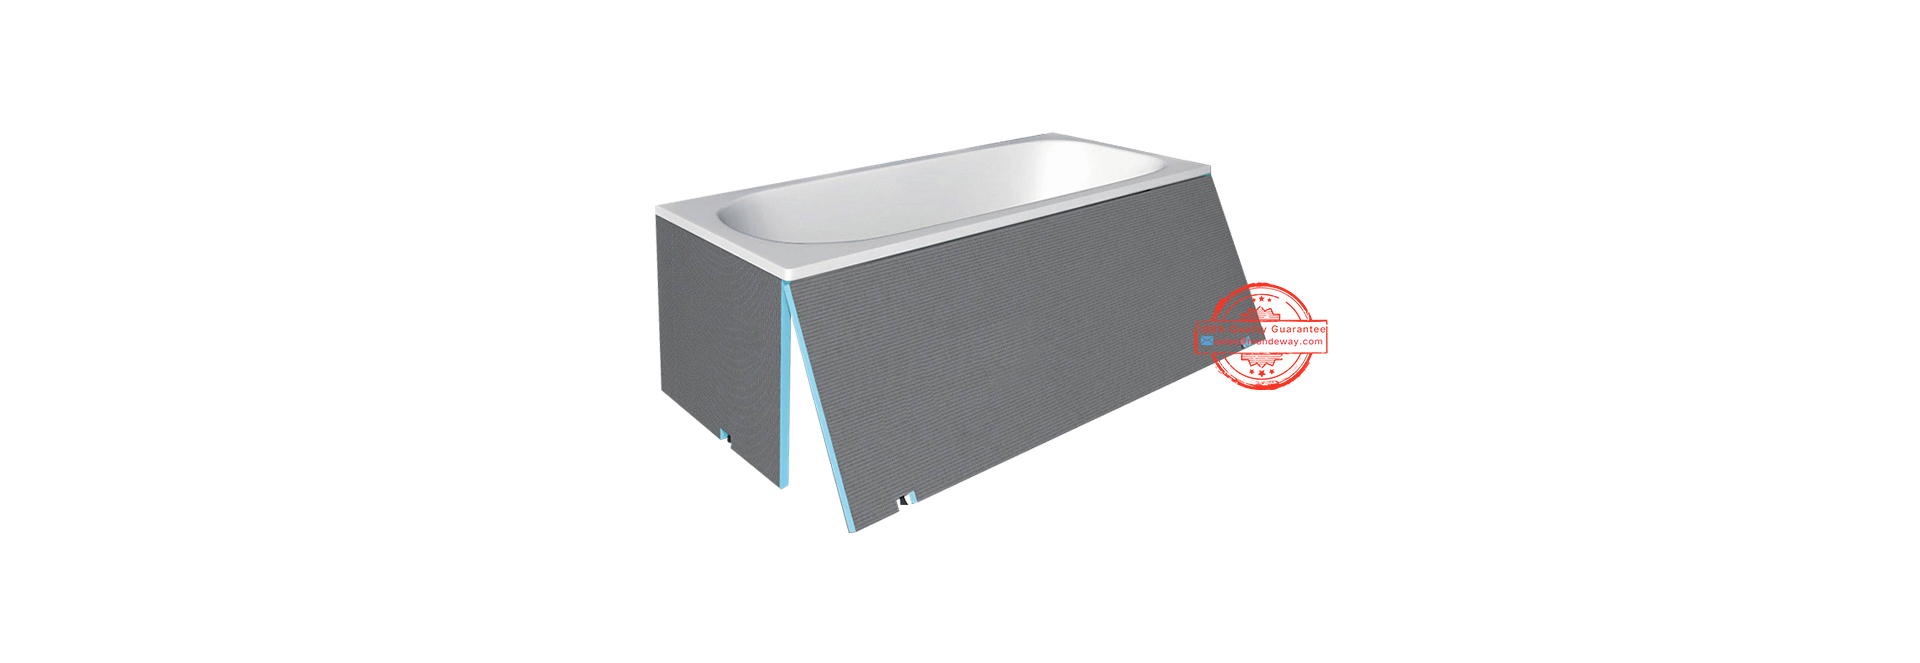 Bathtub insulation board